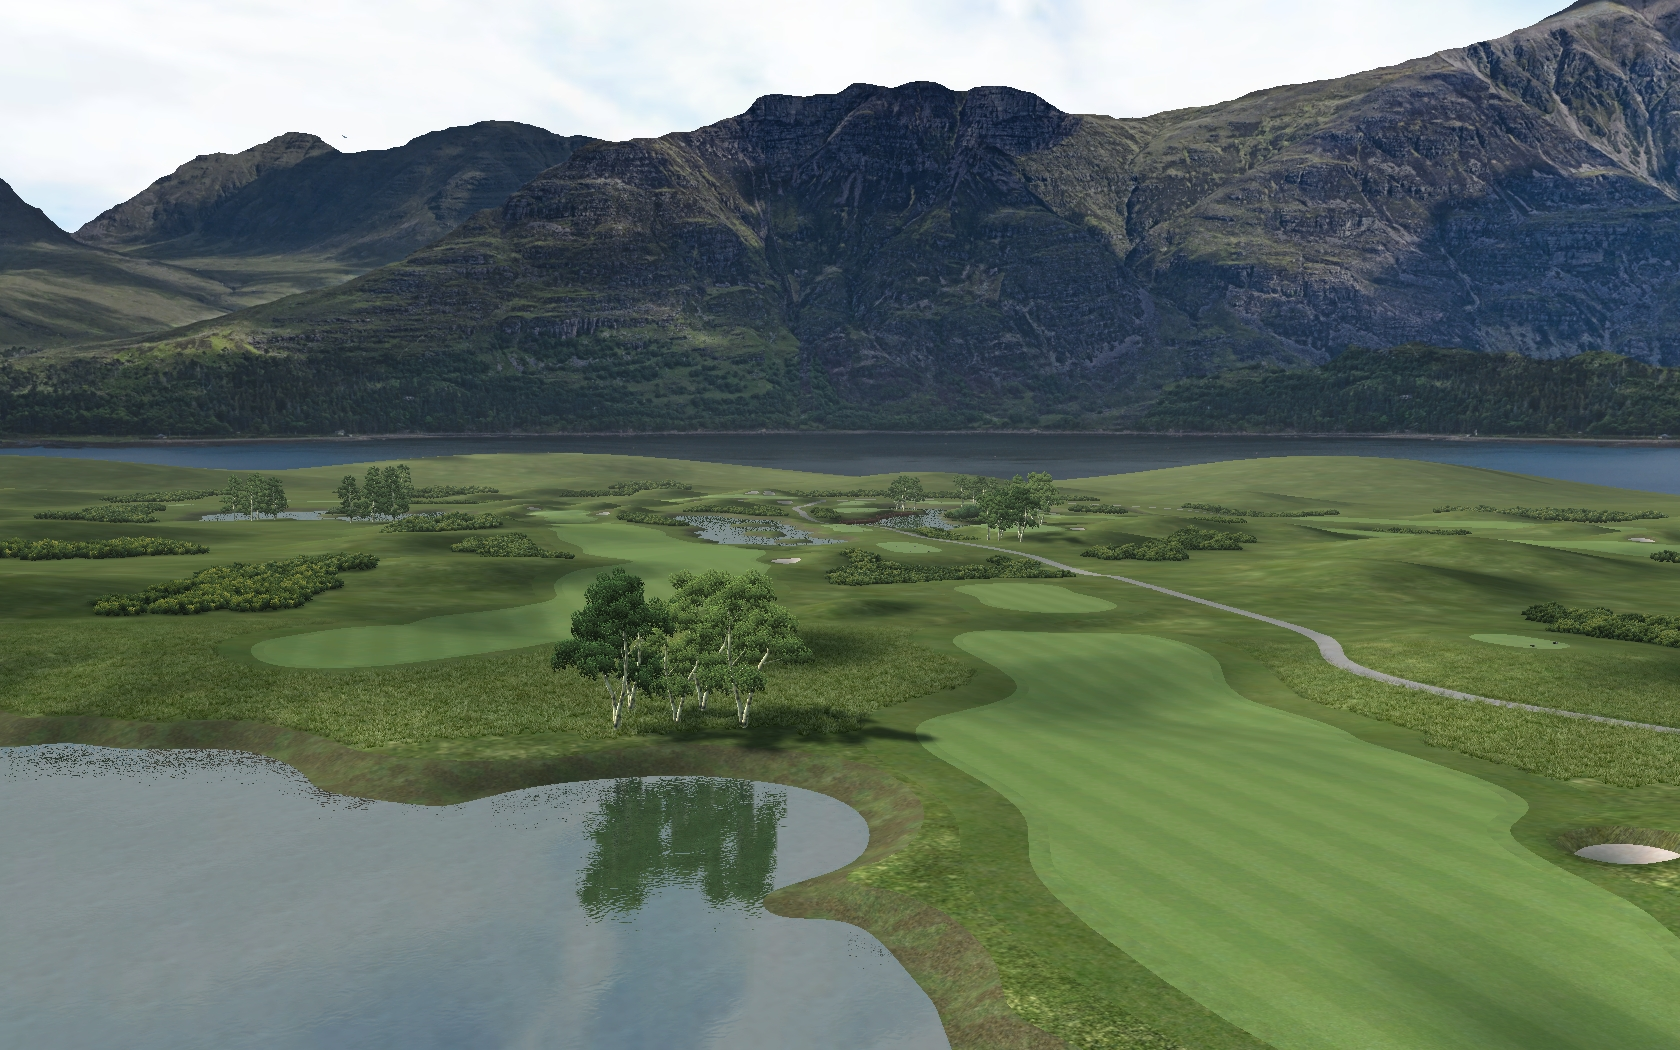 Picture of Queensway Valley - The Old Course - click to view original size